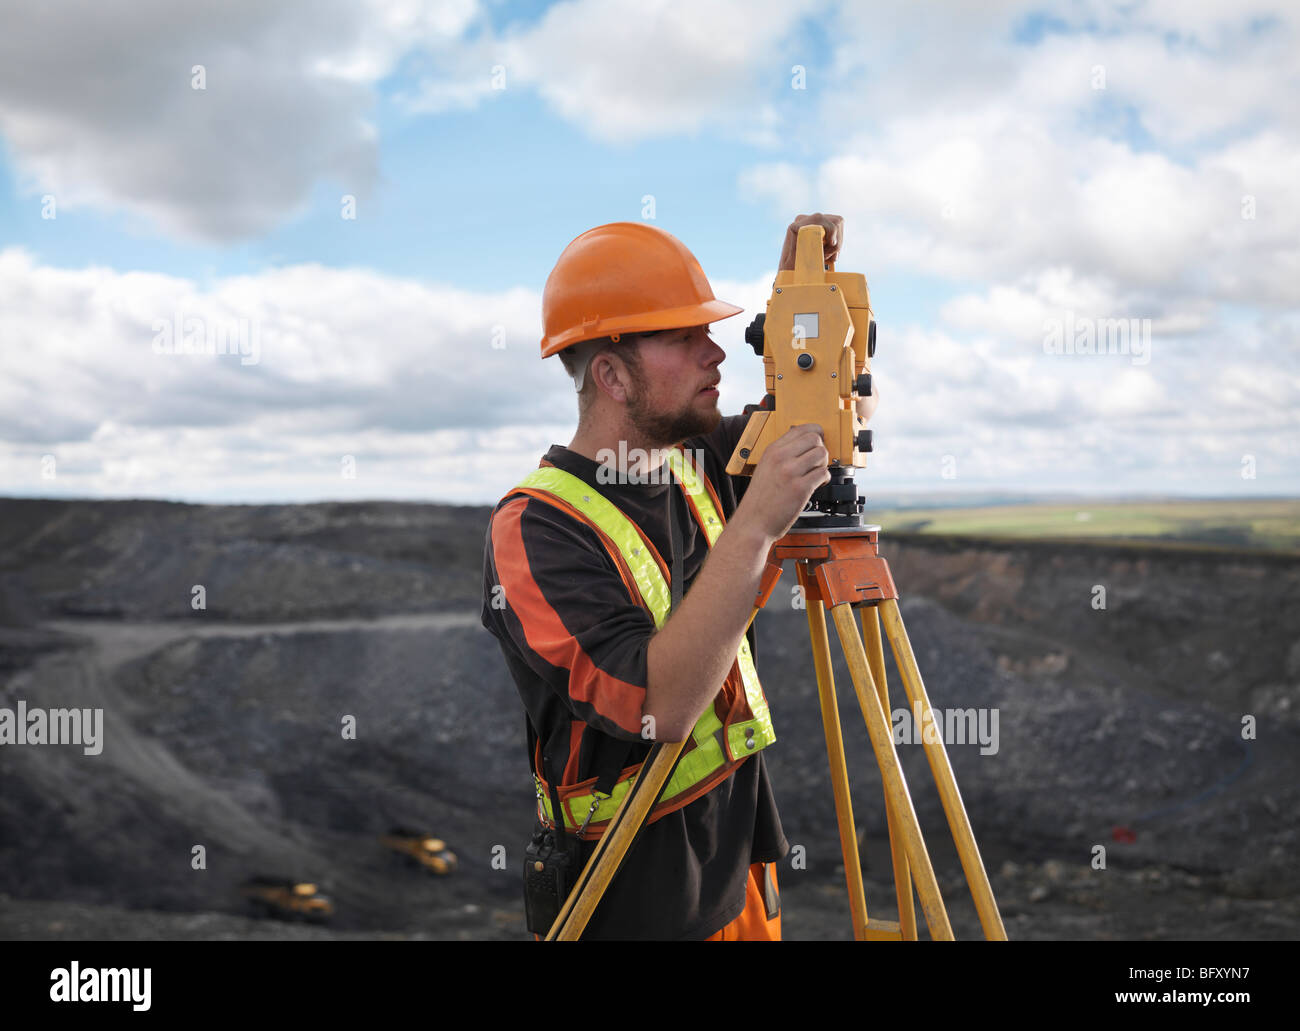 Coal Miner With Surveying Equipment - Stock Image